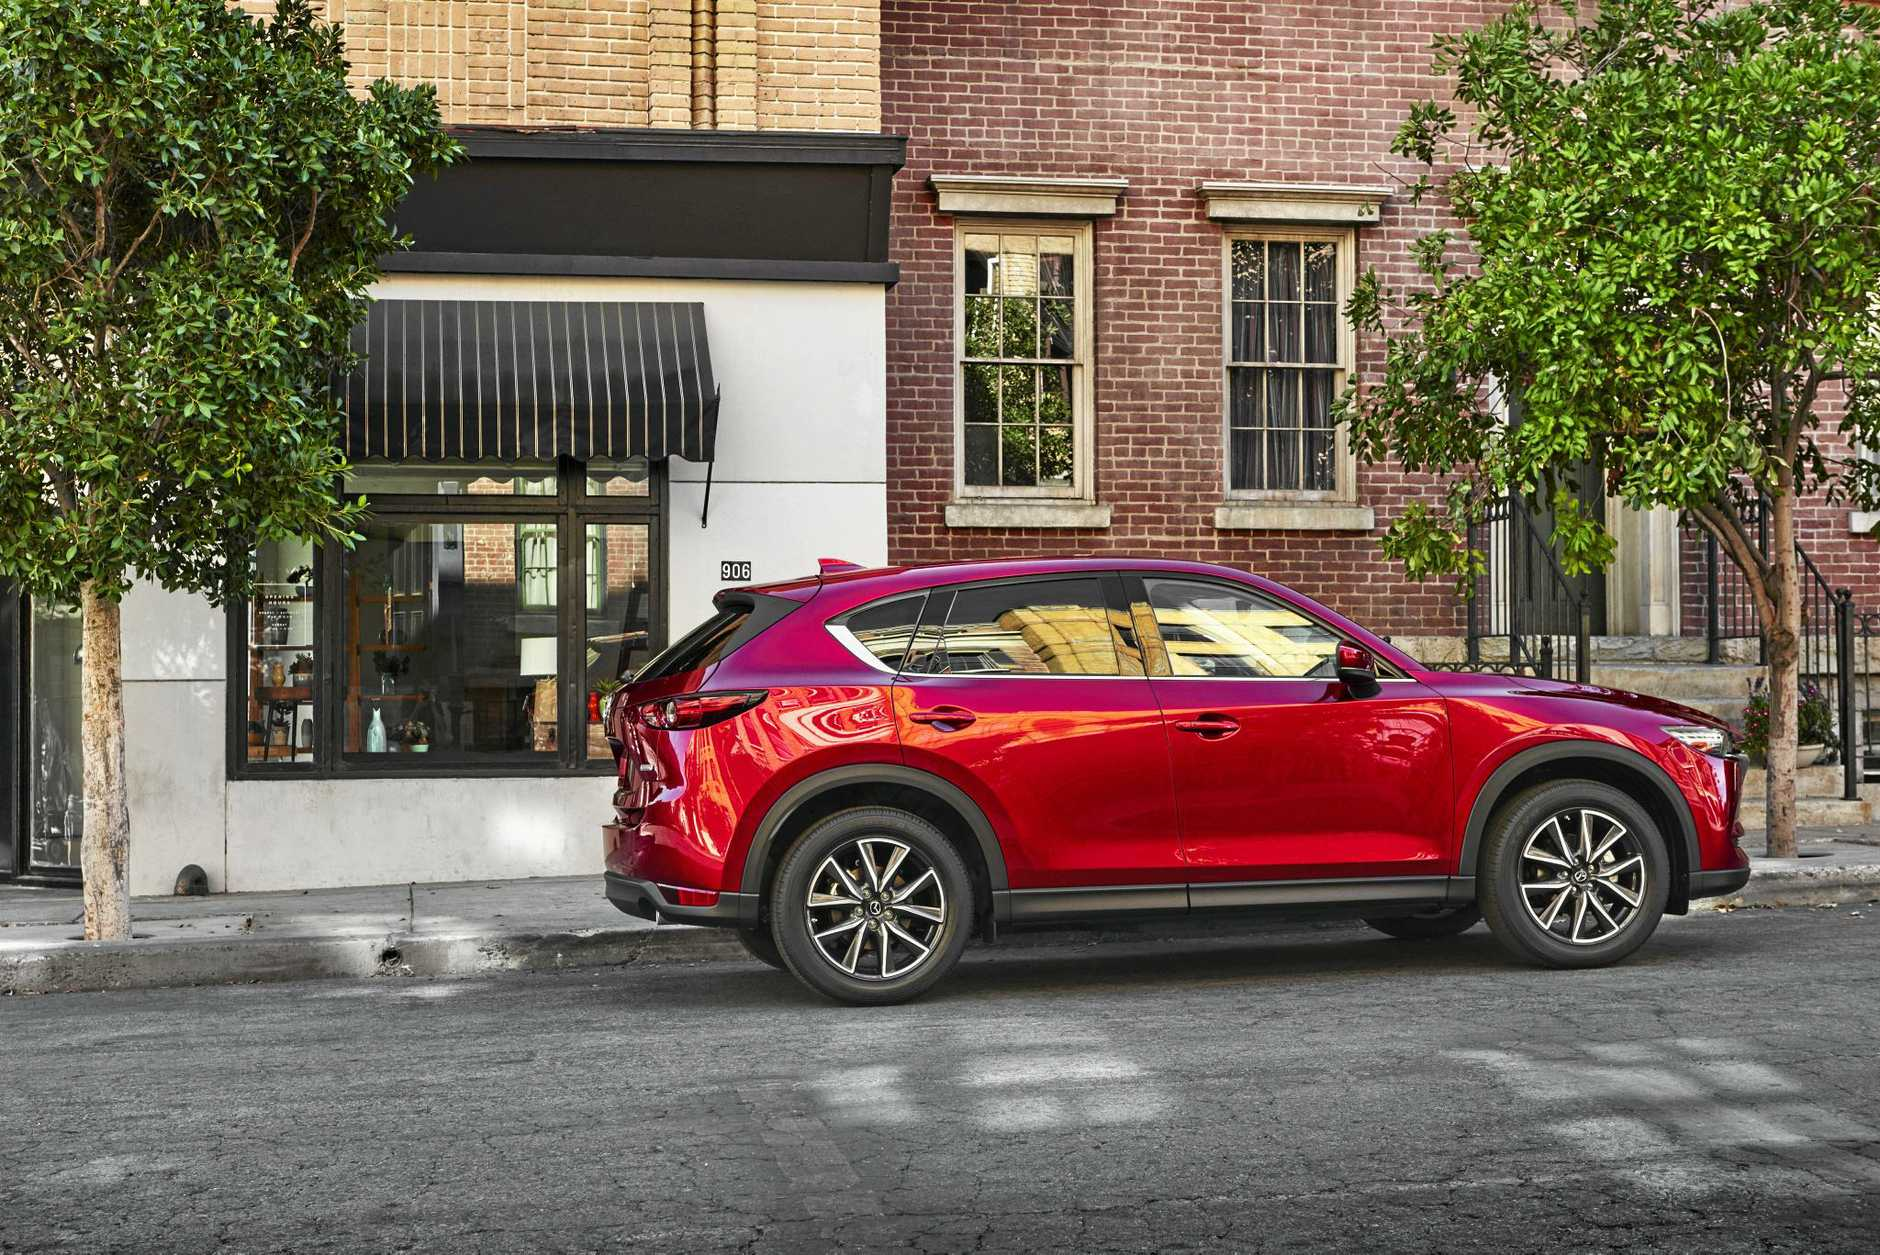 The 2017 Mazda CX-5 crossover SUV has been revealed today.